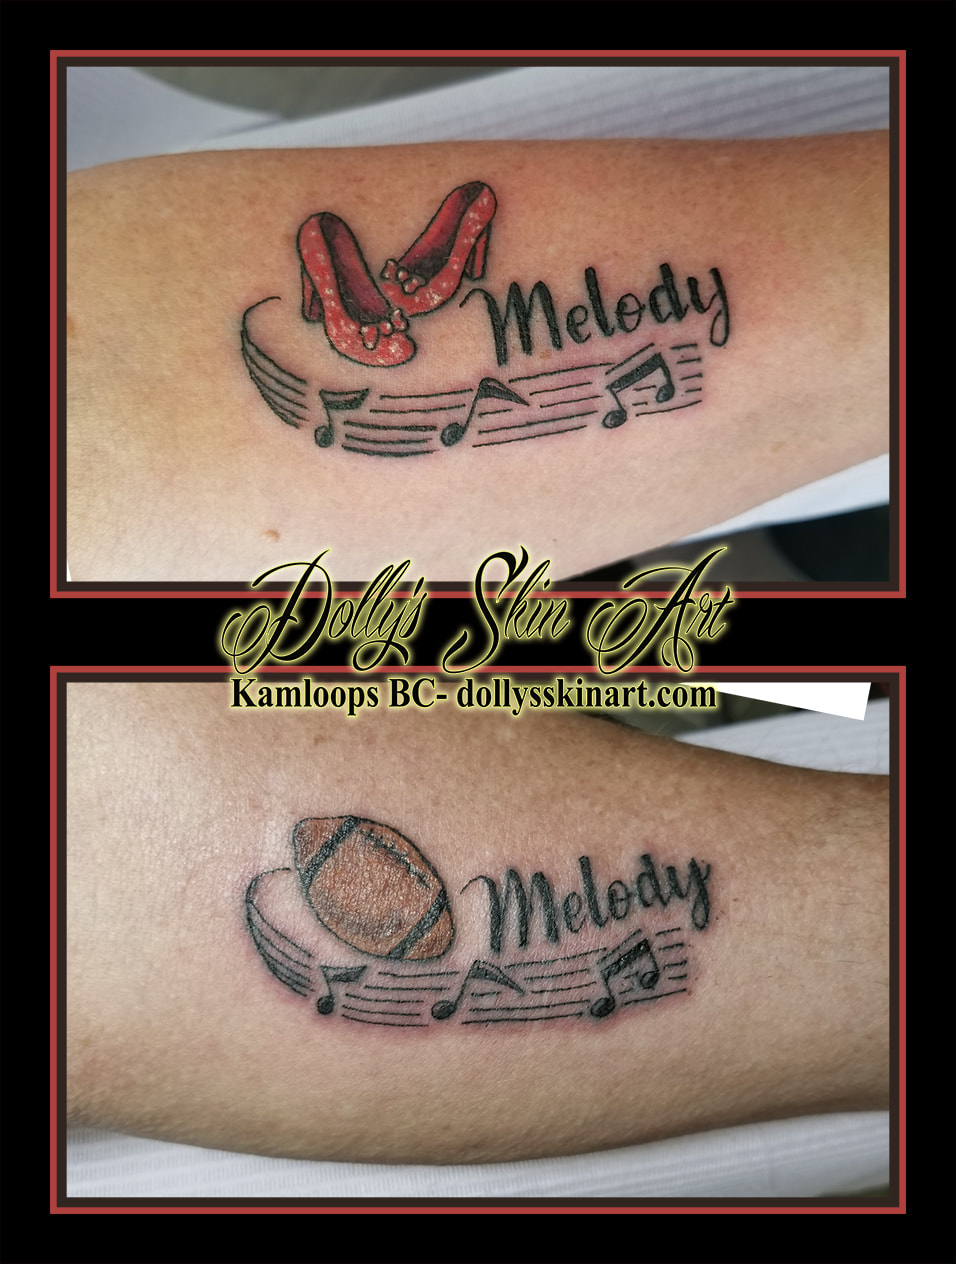 ruby slippers football red brown black melody music font lettering forearm tattoo kamloops tattoo dolly's skin art